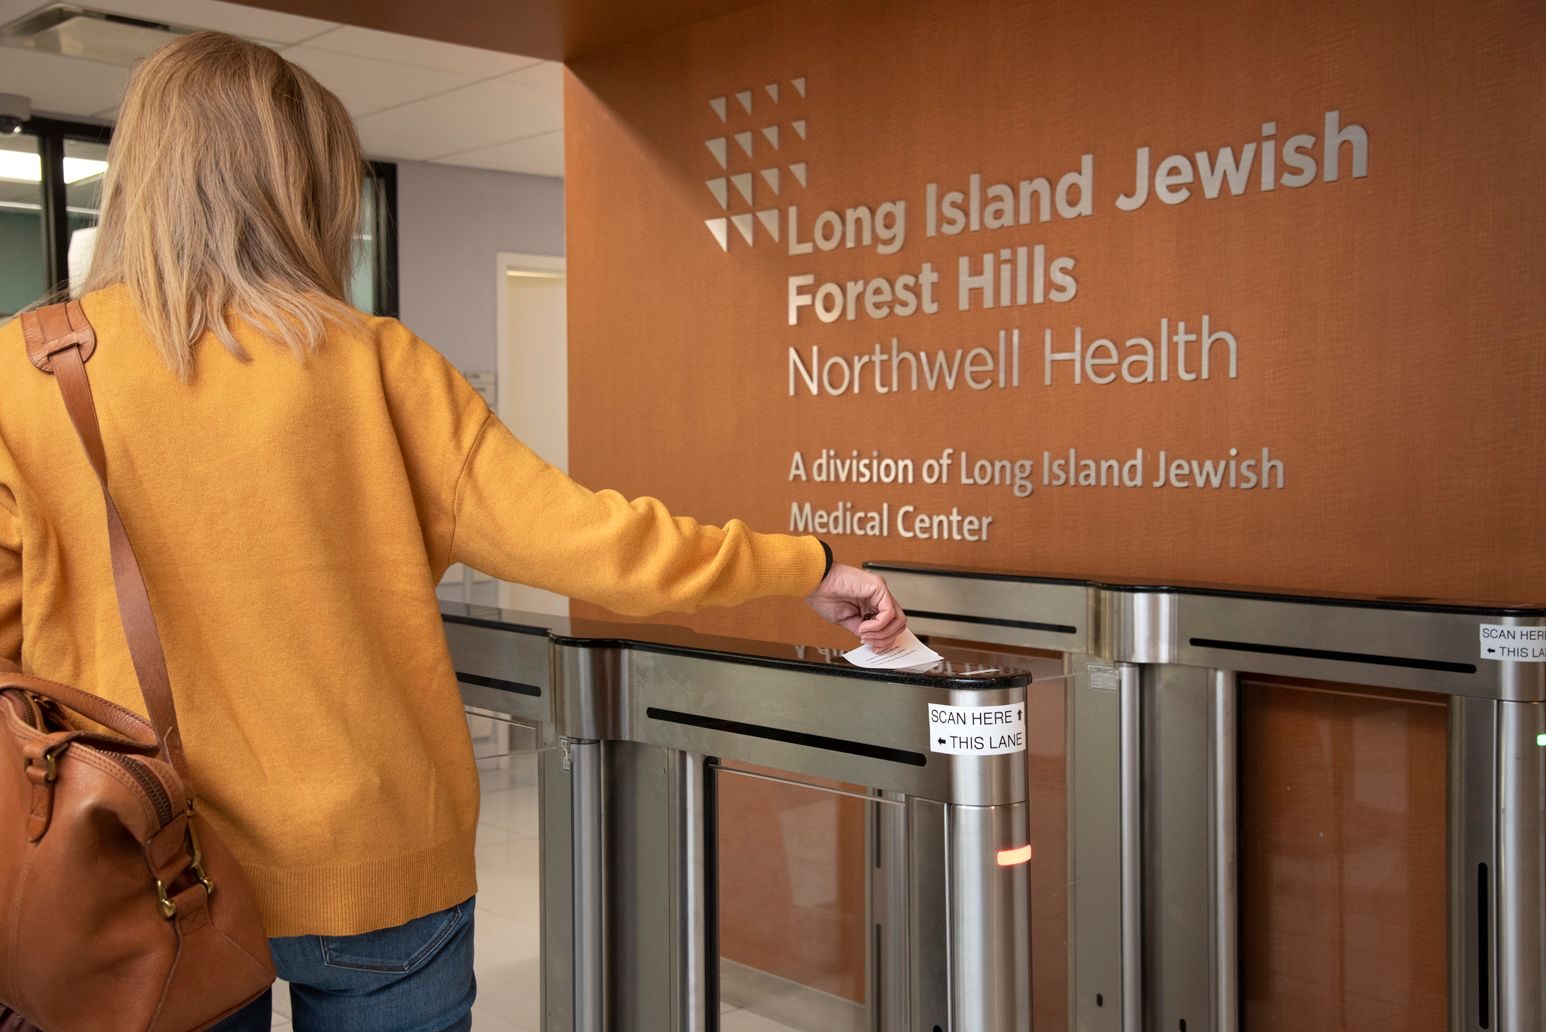 Visitors at LIJ Forest Hills need to scan a temporary computer-generated visitor badge with their photo and a barcode in order to pass through the hospital turnstiles.